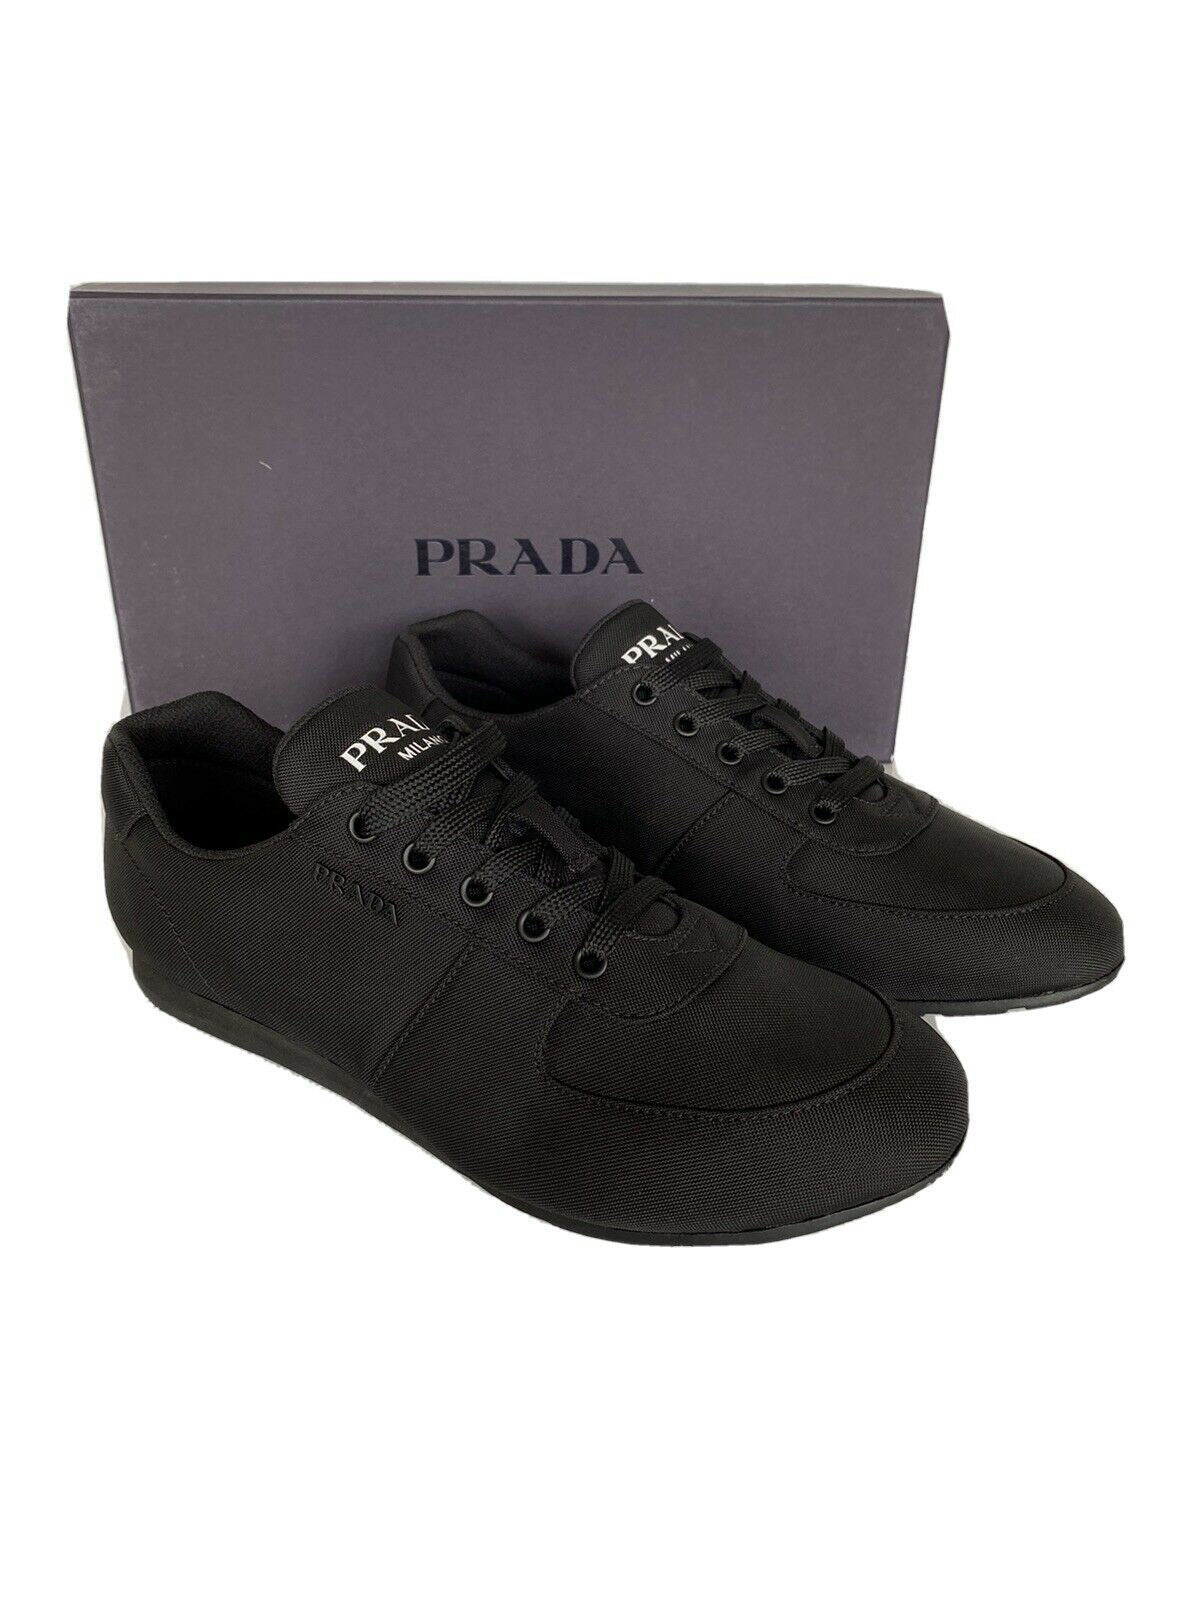 NIB PRADA Men's Nylon Tech Black  Sneakers 4E3245 Size 9 US (Prada 8)